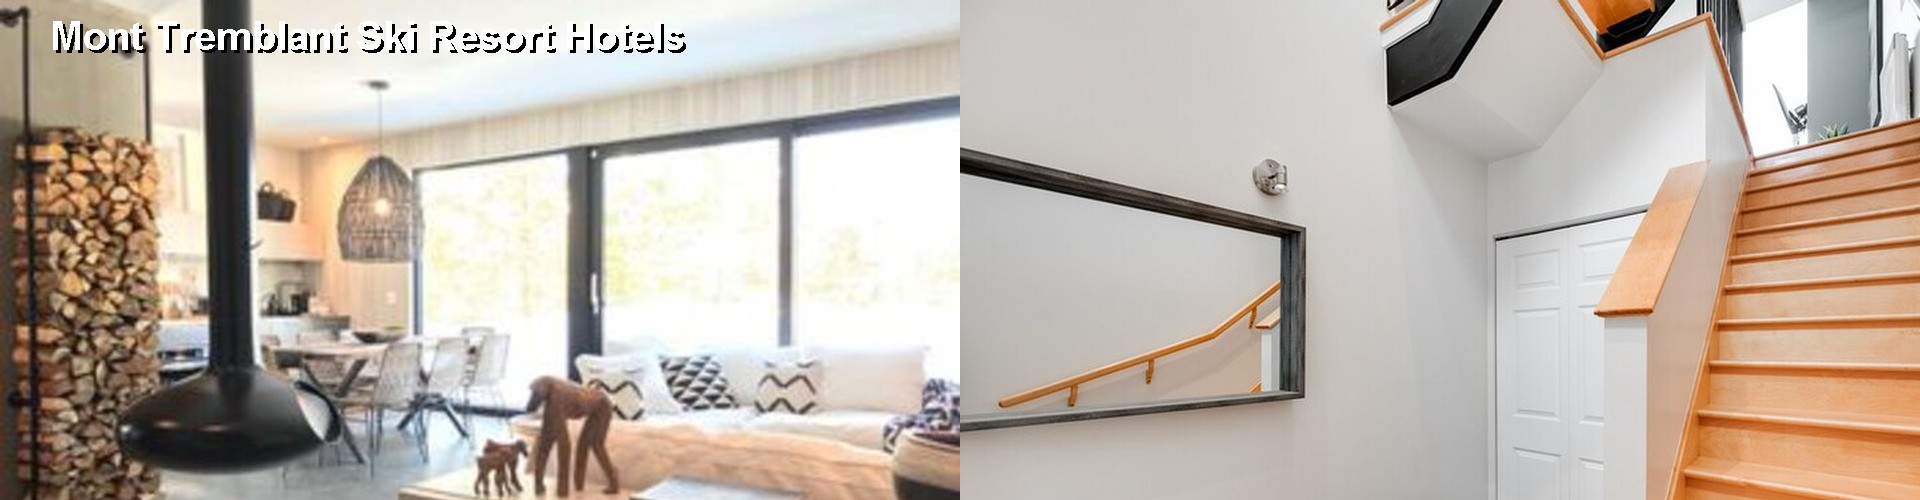 5 Best Hotels near Mont Tremblant Ski Resort